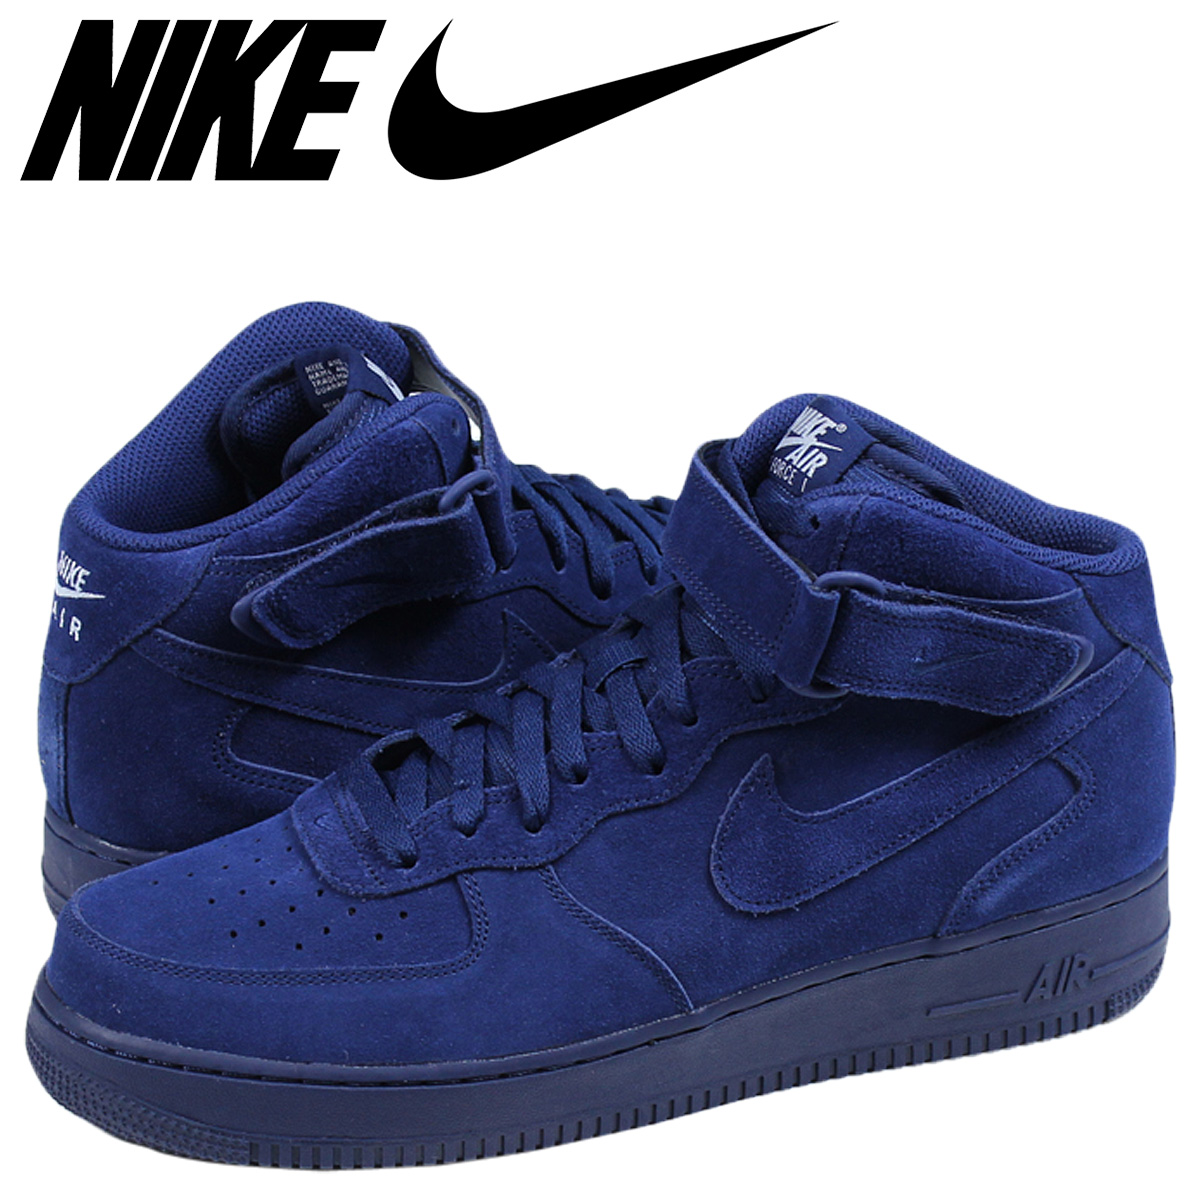 sneakers for cheap 91c89 64895 Product Information